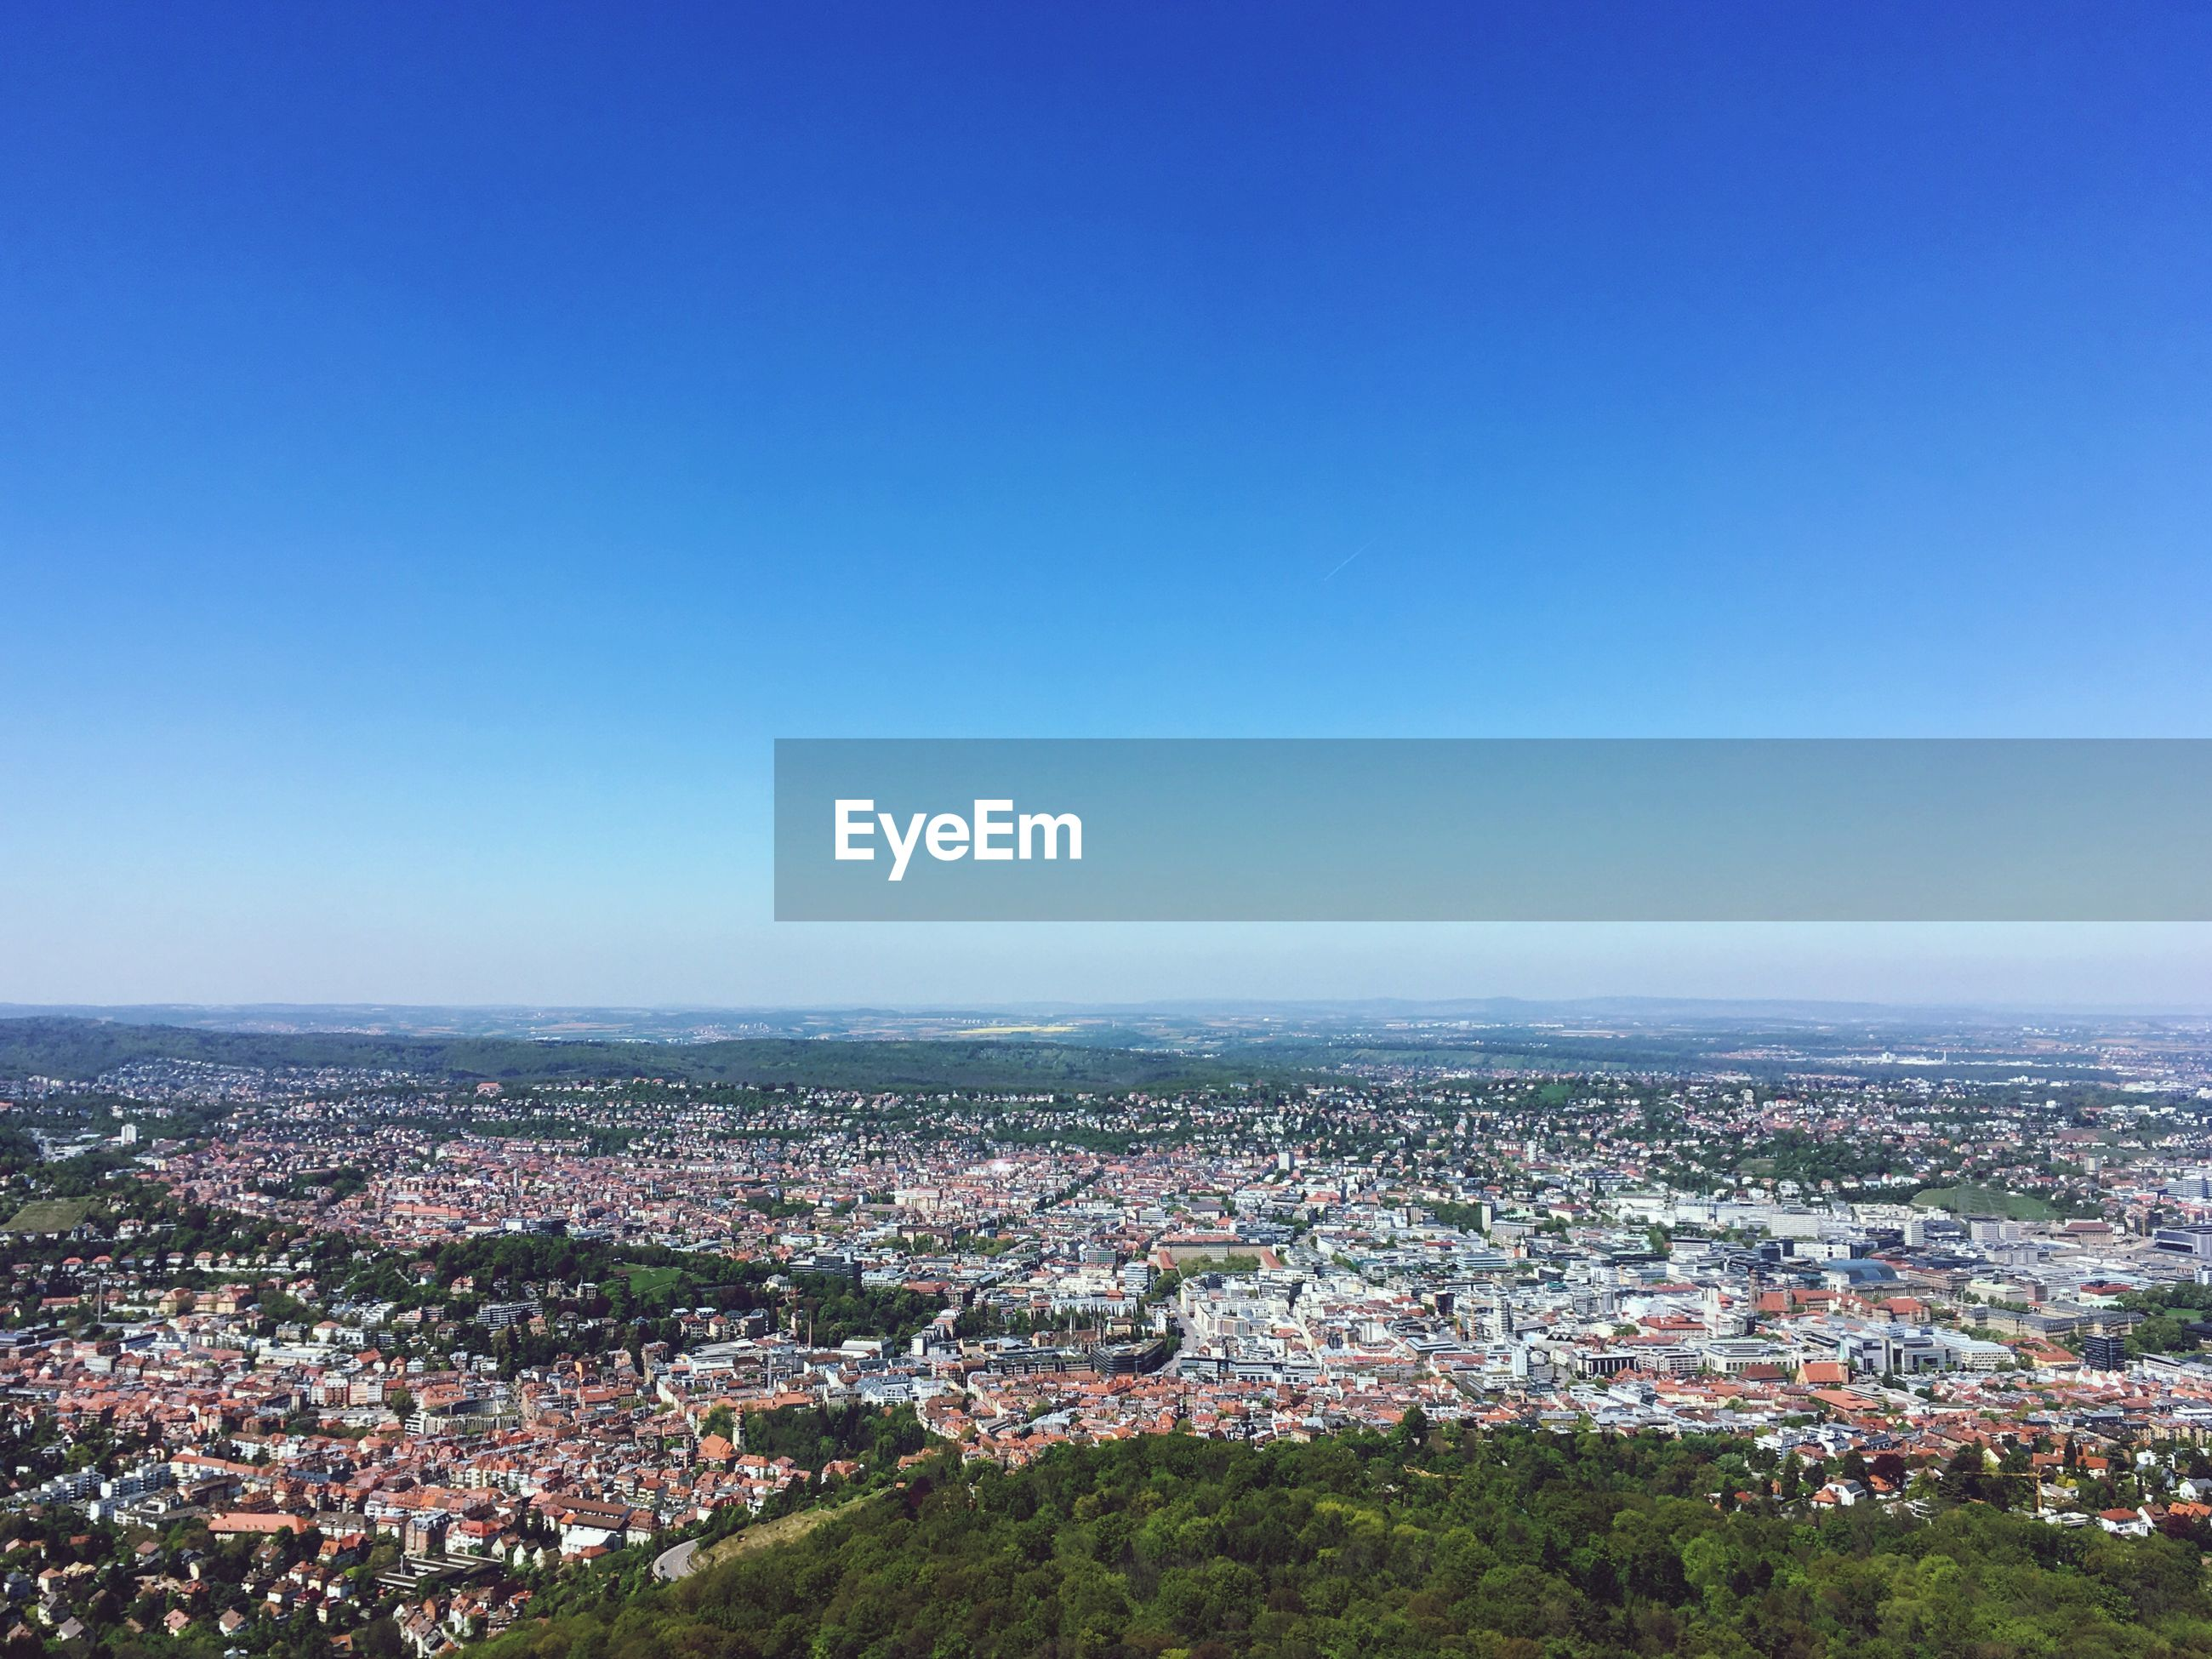 HIGH ANGLE VIEW OF TOWN AGAINST CLEAR BLUE SKY